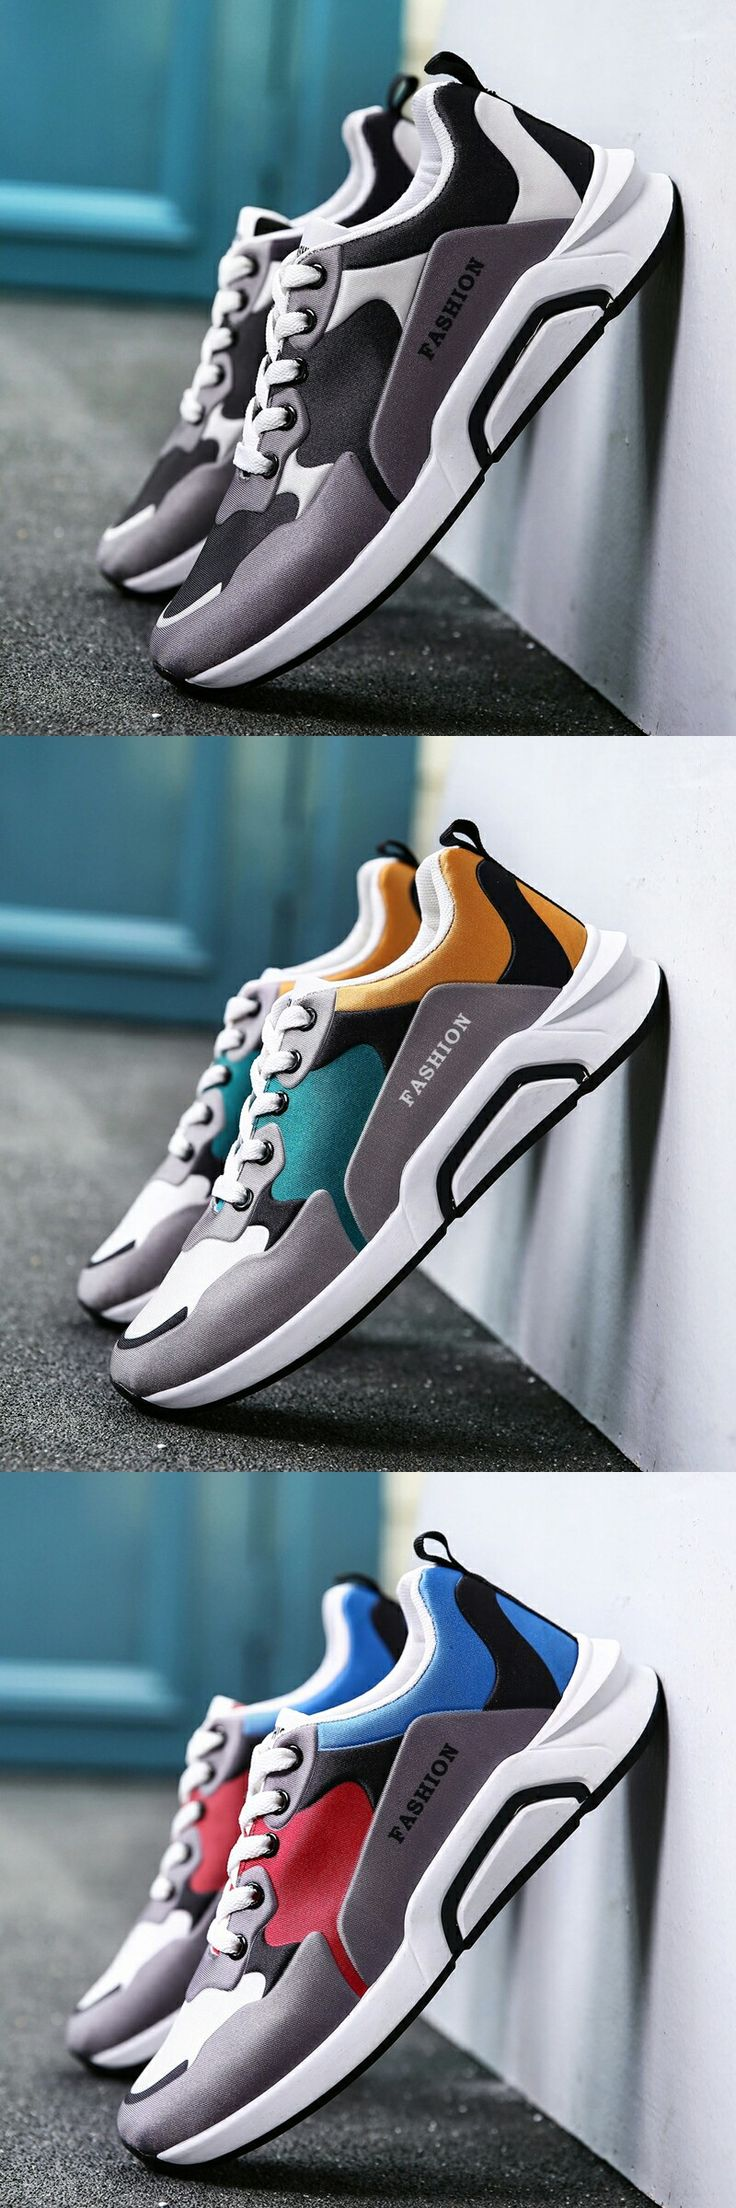 20182017 Fashion Sneakers Saucony Womens Grid V2 Training Shoes Online